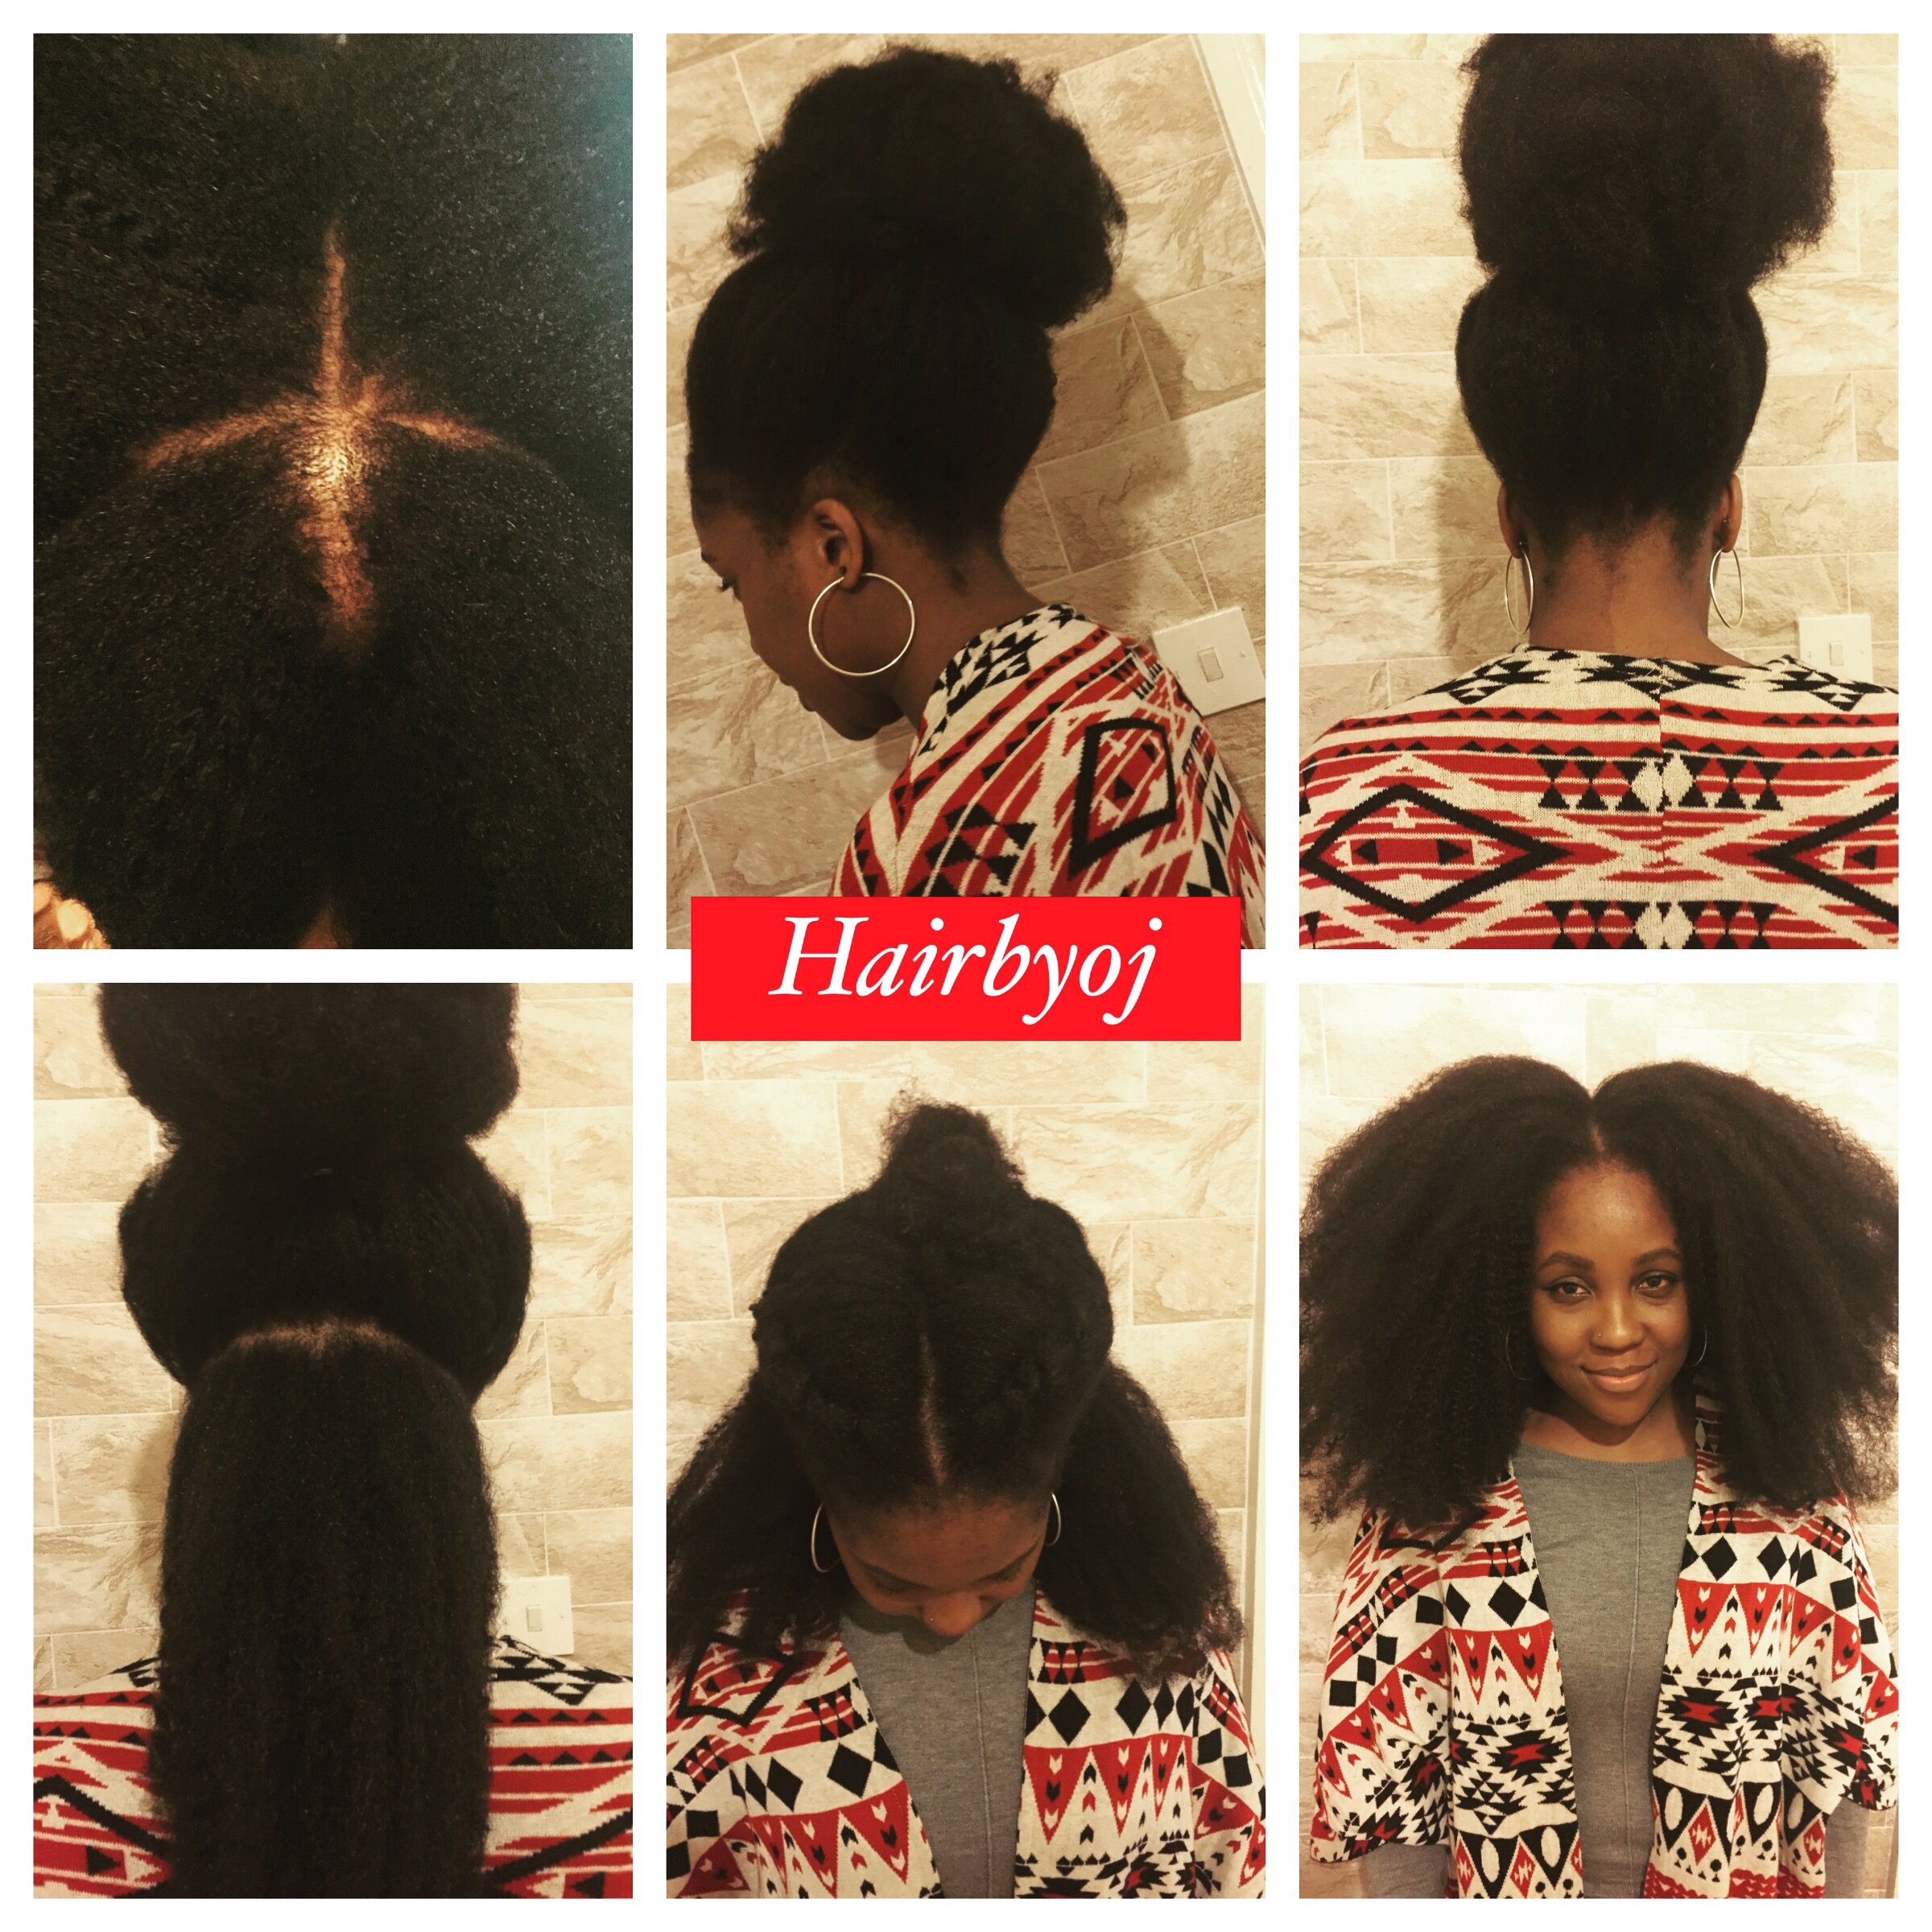 4 Way Part Vixen Crochet Braids With Marley Hair In It S Natural State Hairbyoj